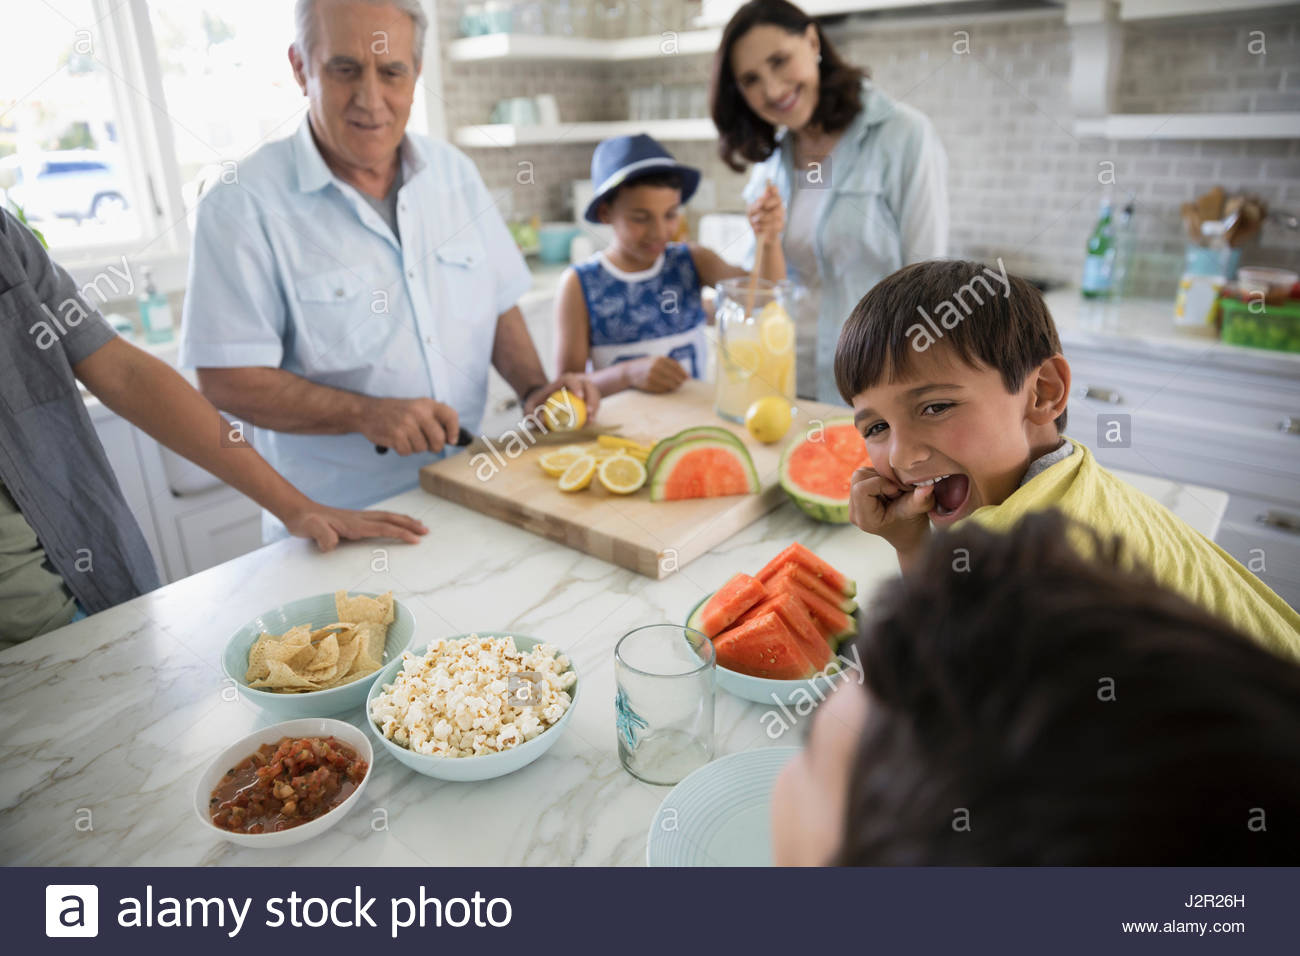 Multi-generation family making lemonade and snacking in kitchen - Stock Image